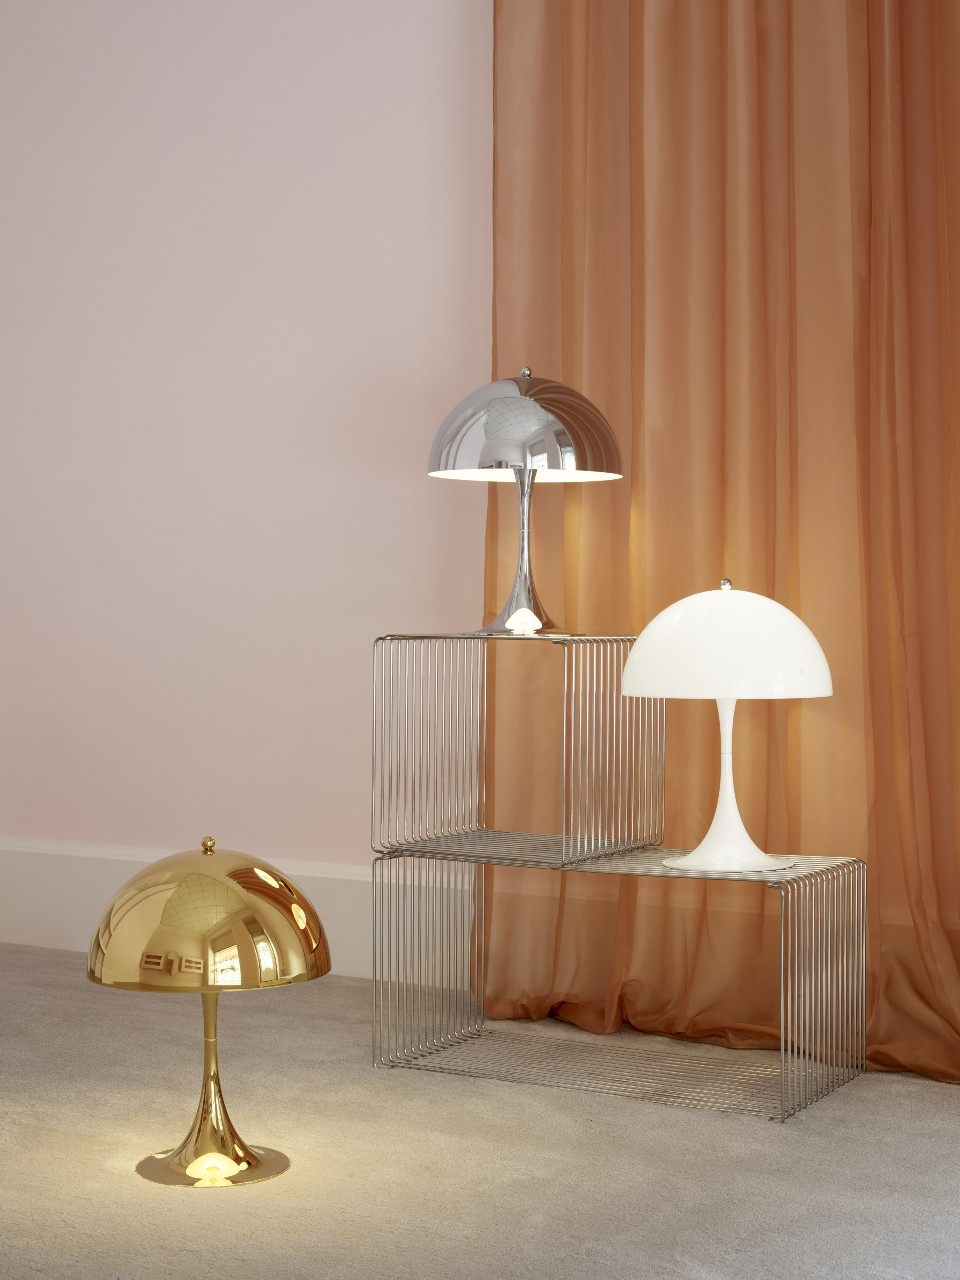 The Panthella 320 table lamp